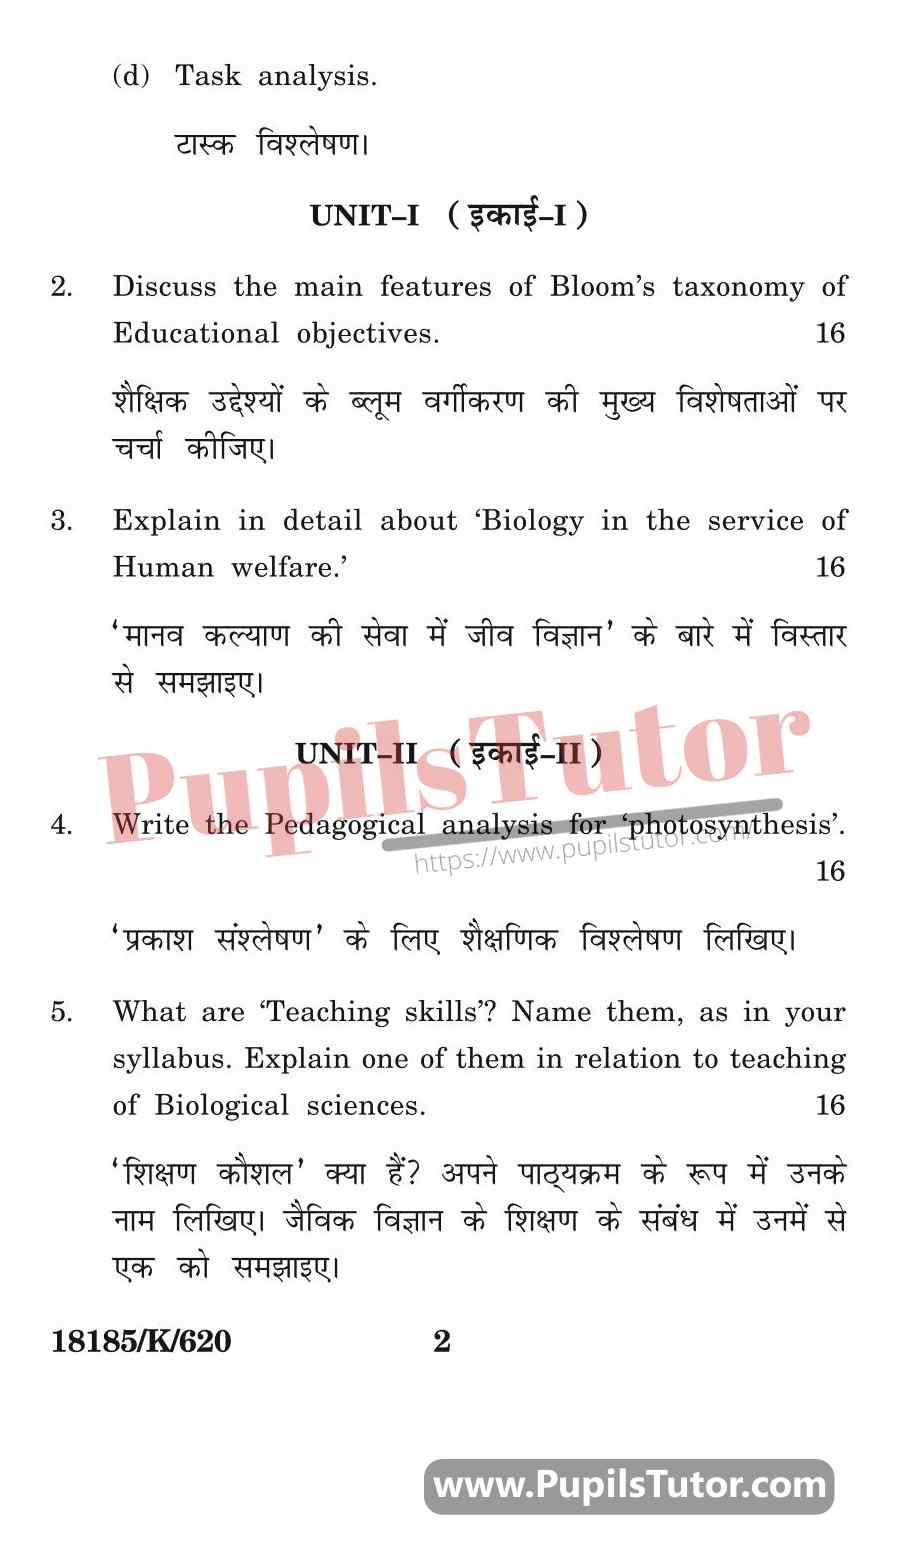 KUK (Kurukshetra University, Haryana) Pedagogy Of Biological Science Question Paper 2020 For B.Ed 1st And 2nd Year And All The 4 Semesters In English And Hindi Medium Free Download PDF - Page 2 - www.pupilstutor.com